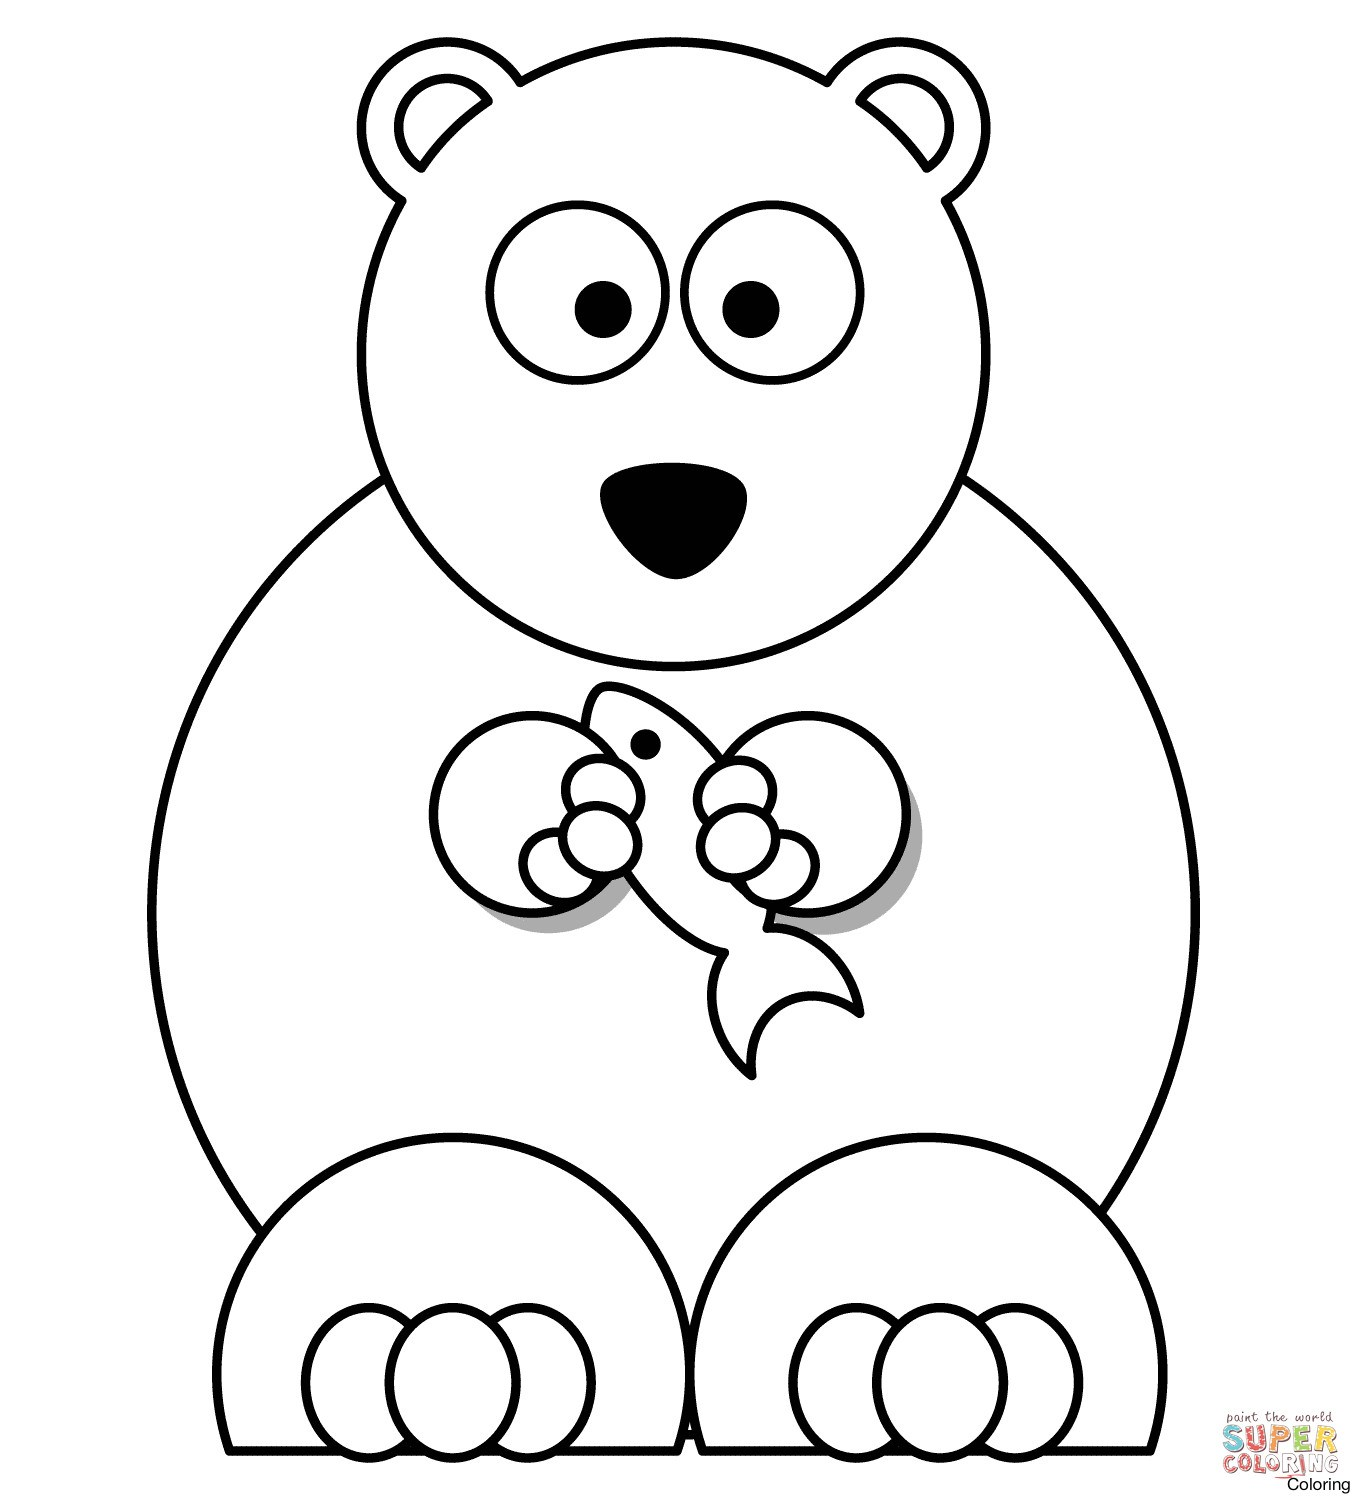 how to draw a grizzly bear face easy bear face drawing at paintingvalleycom explore grizzly how draw to face a bear